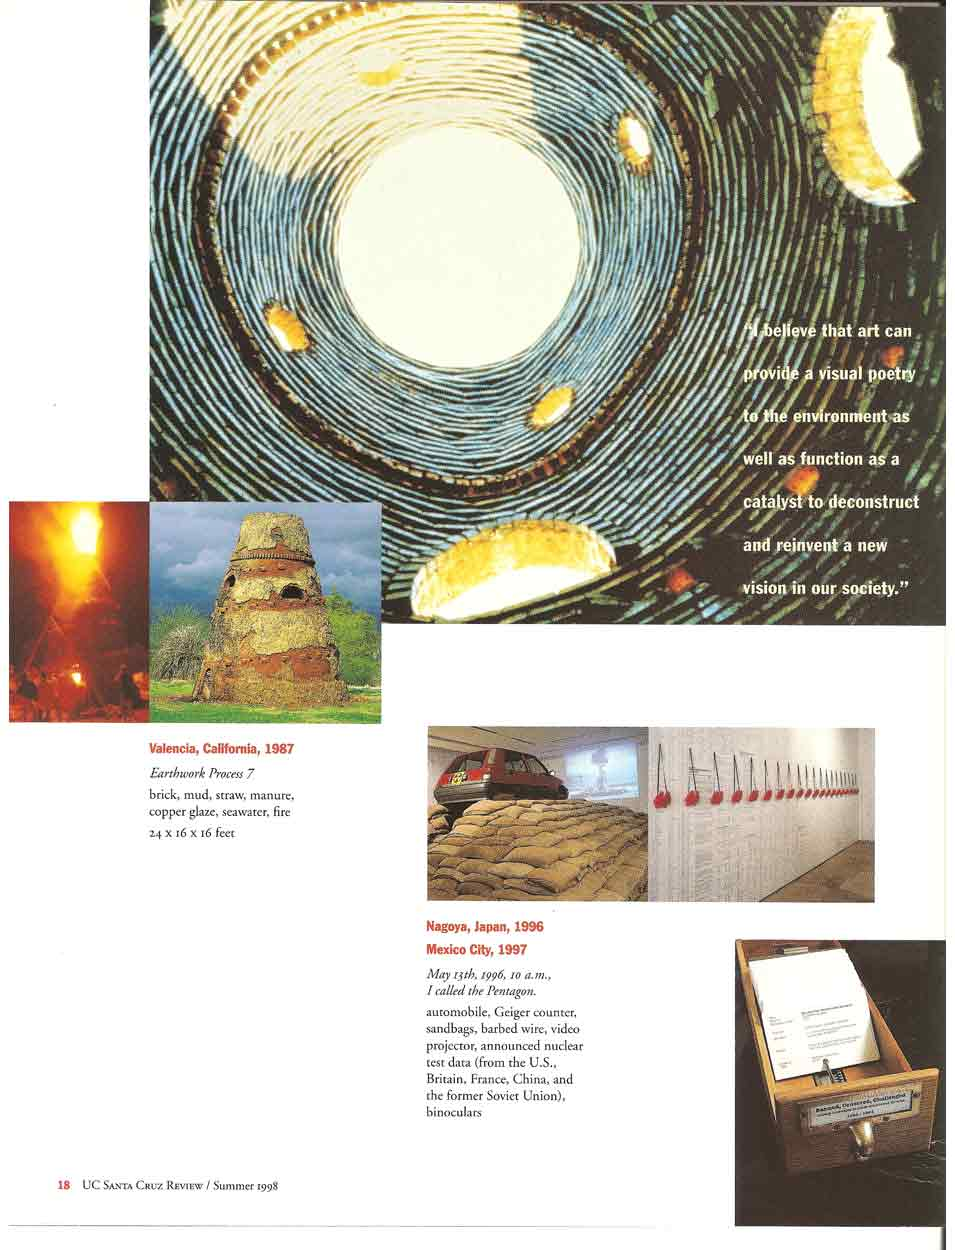 Site Specific: The Highly Visibe Art of Nobuho Nagasawa: pg 3